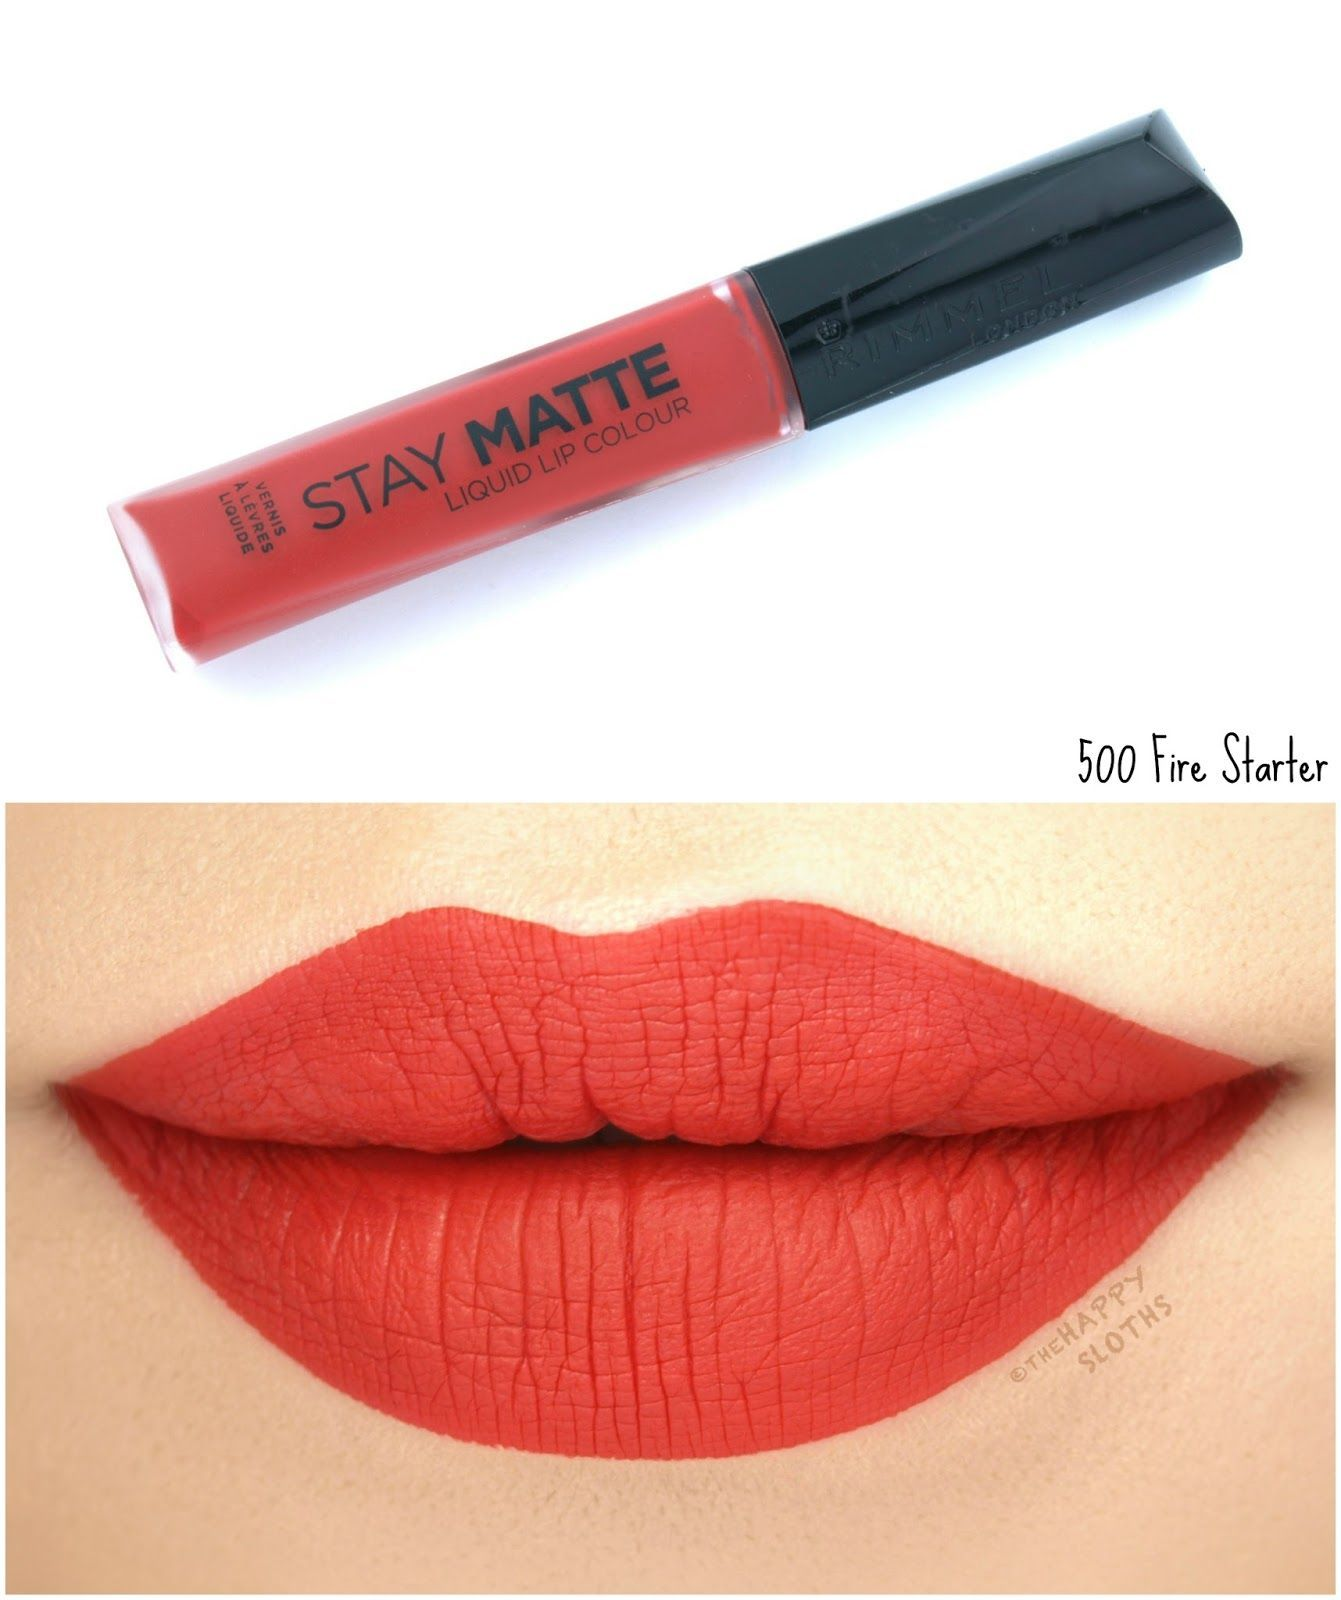 Rimmel London Stay Matte Liquid Lip Colour 500 Fire Starter